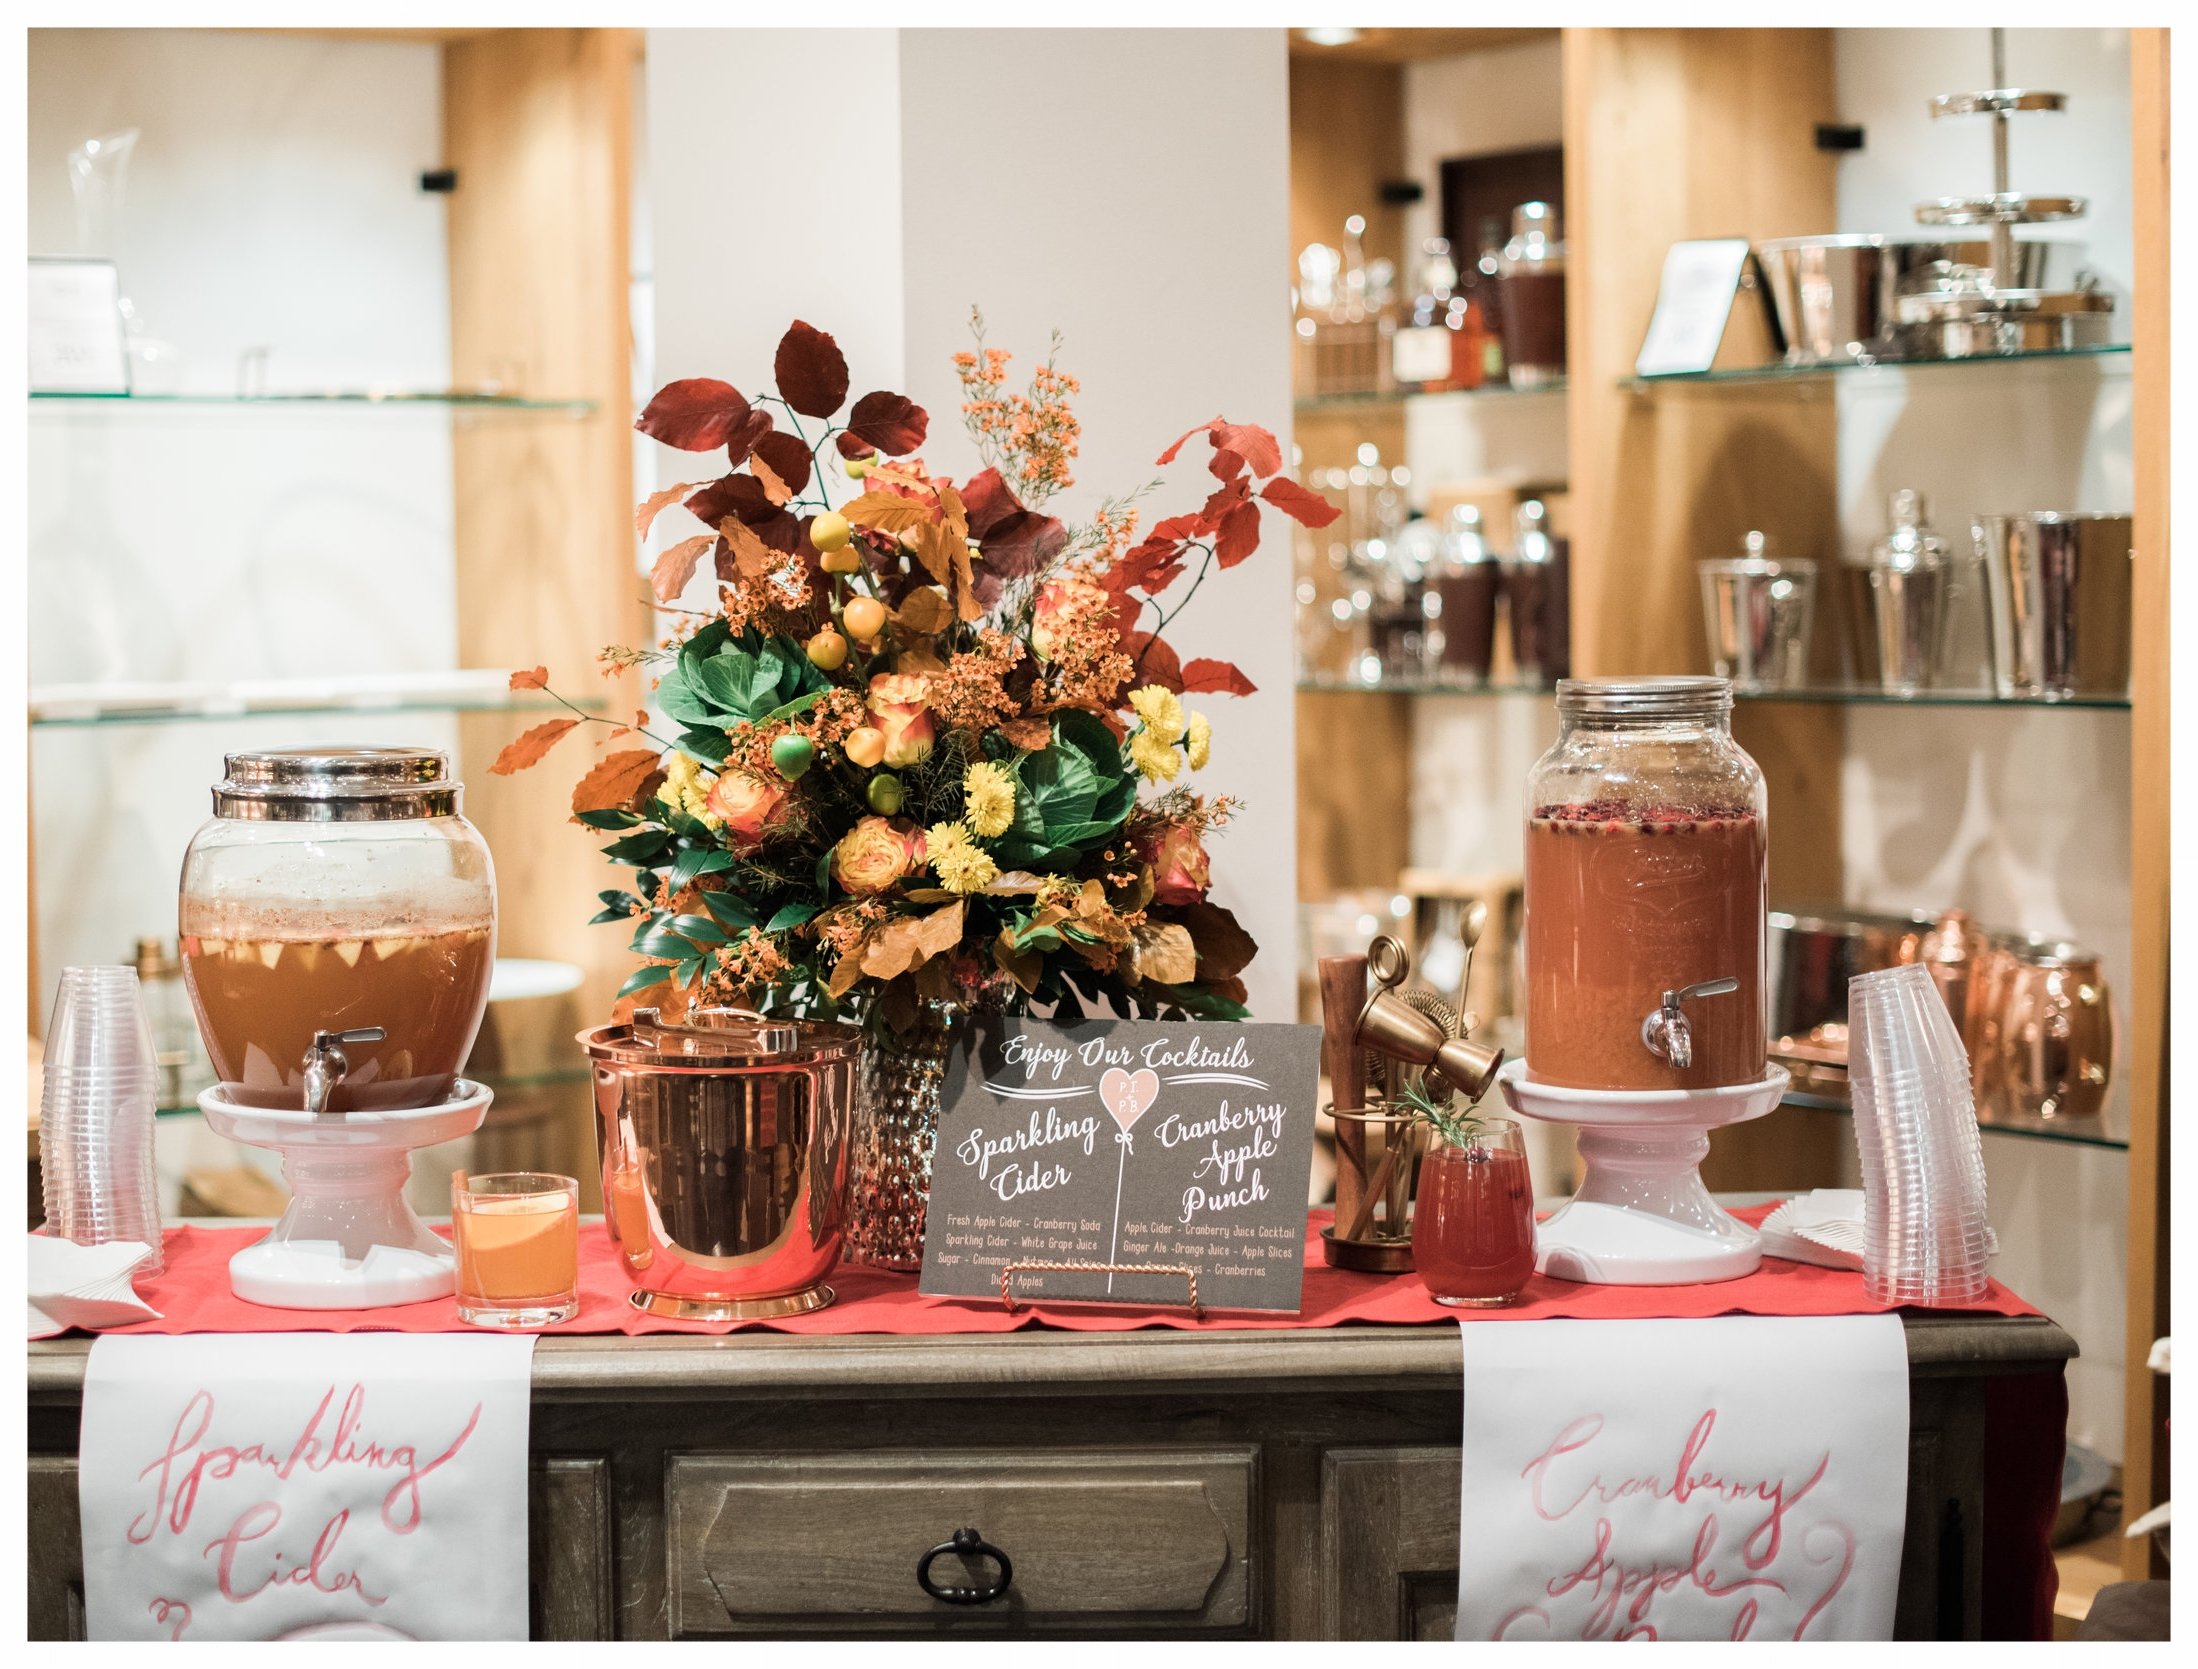 Here is our Fall Drink bar from the Night at the Registry Event with Pottery Barn in October. Photo Credit:  Melanie Zacek Photography